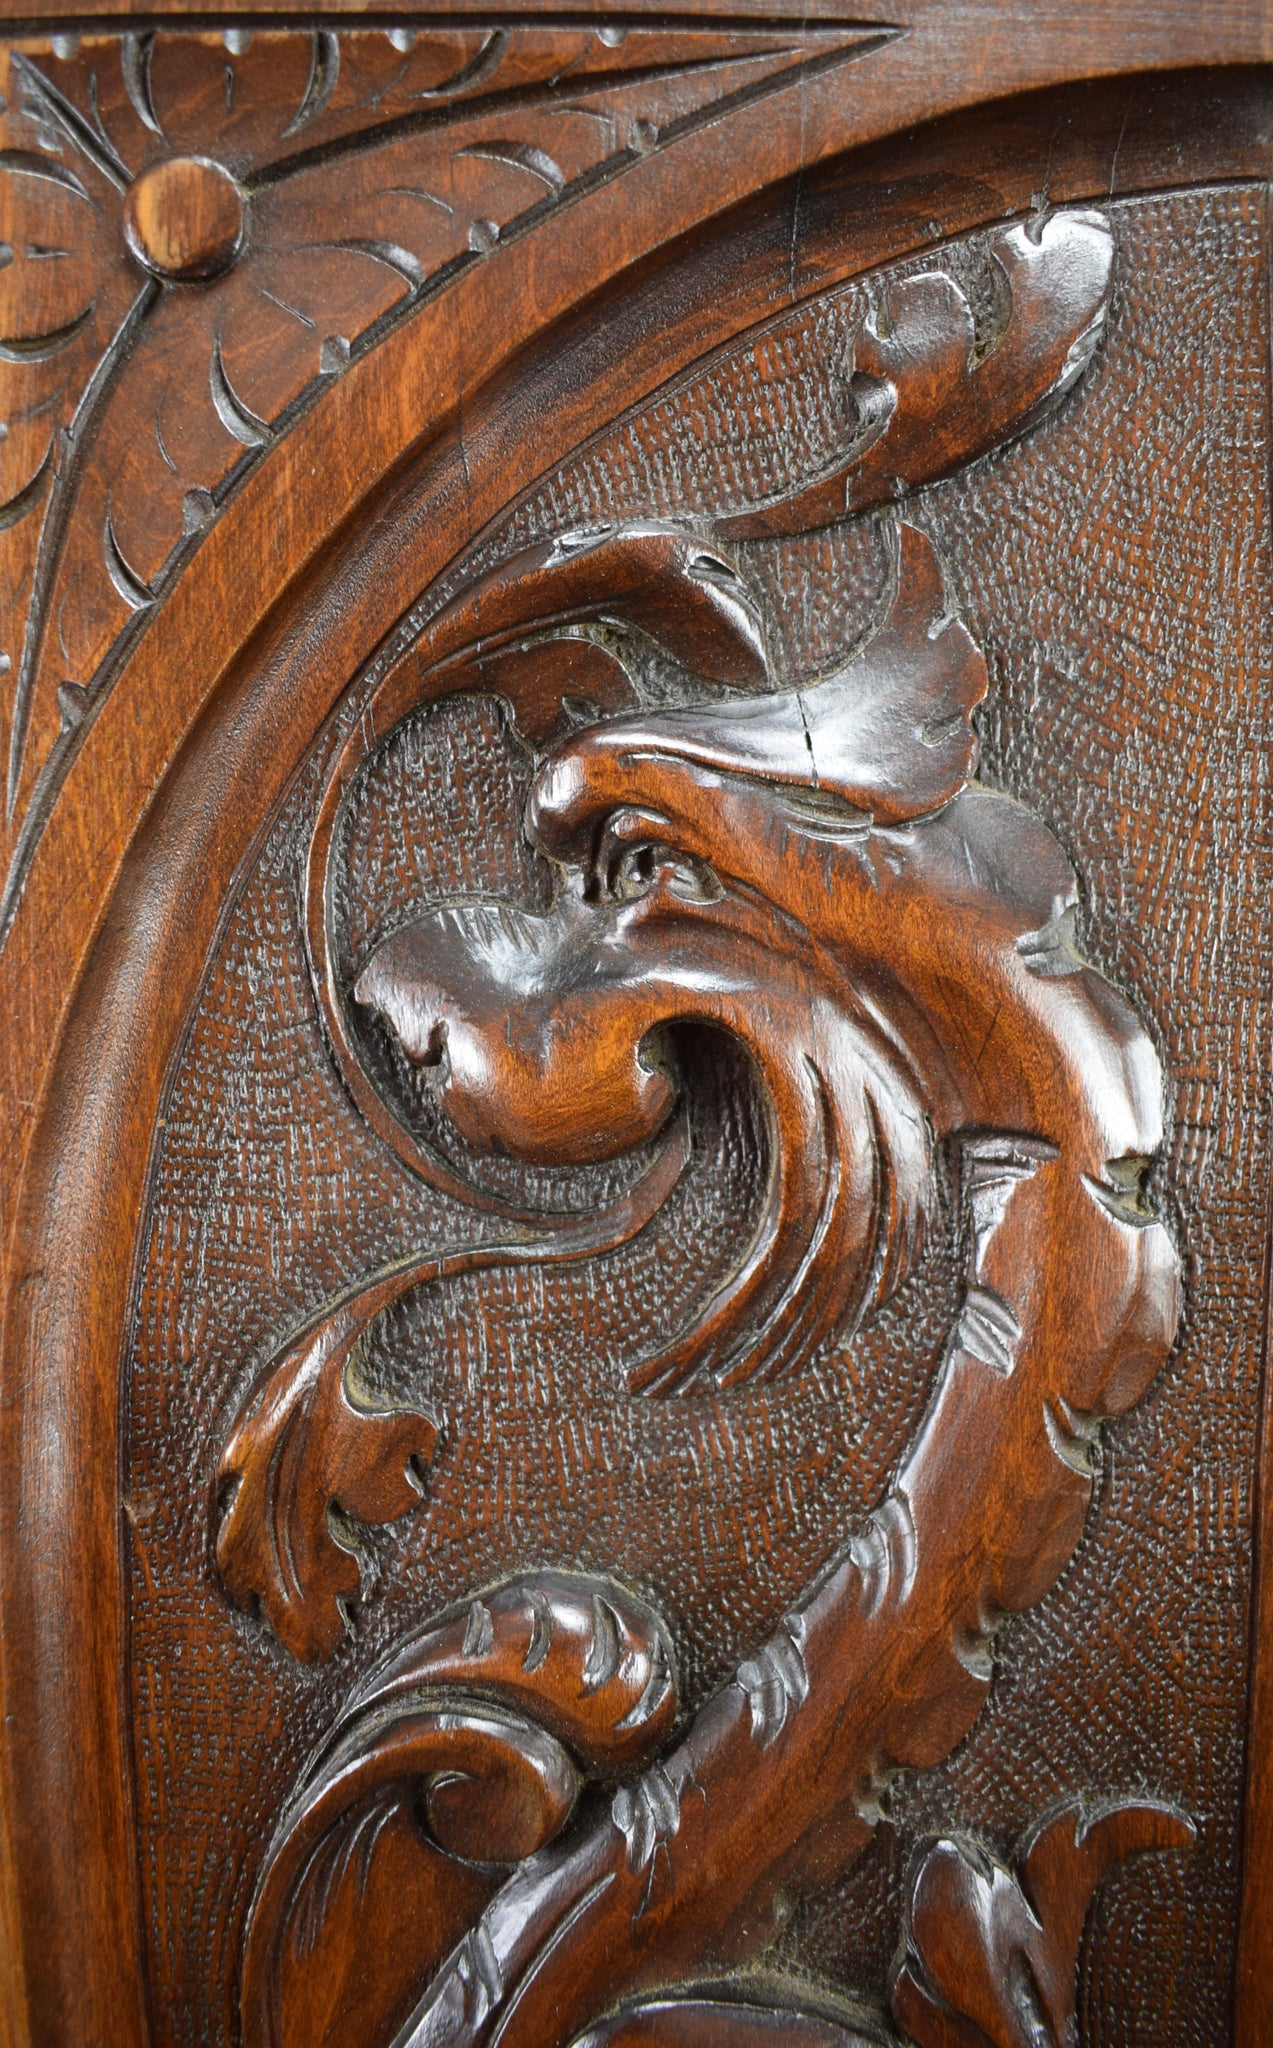 Architectural Carved Doors - Charmantiques